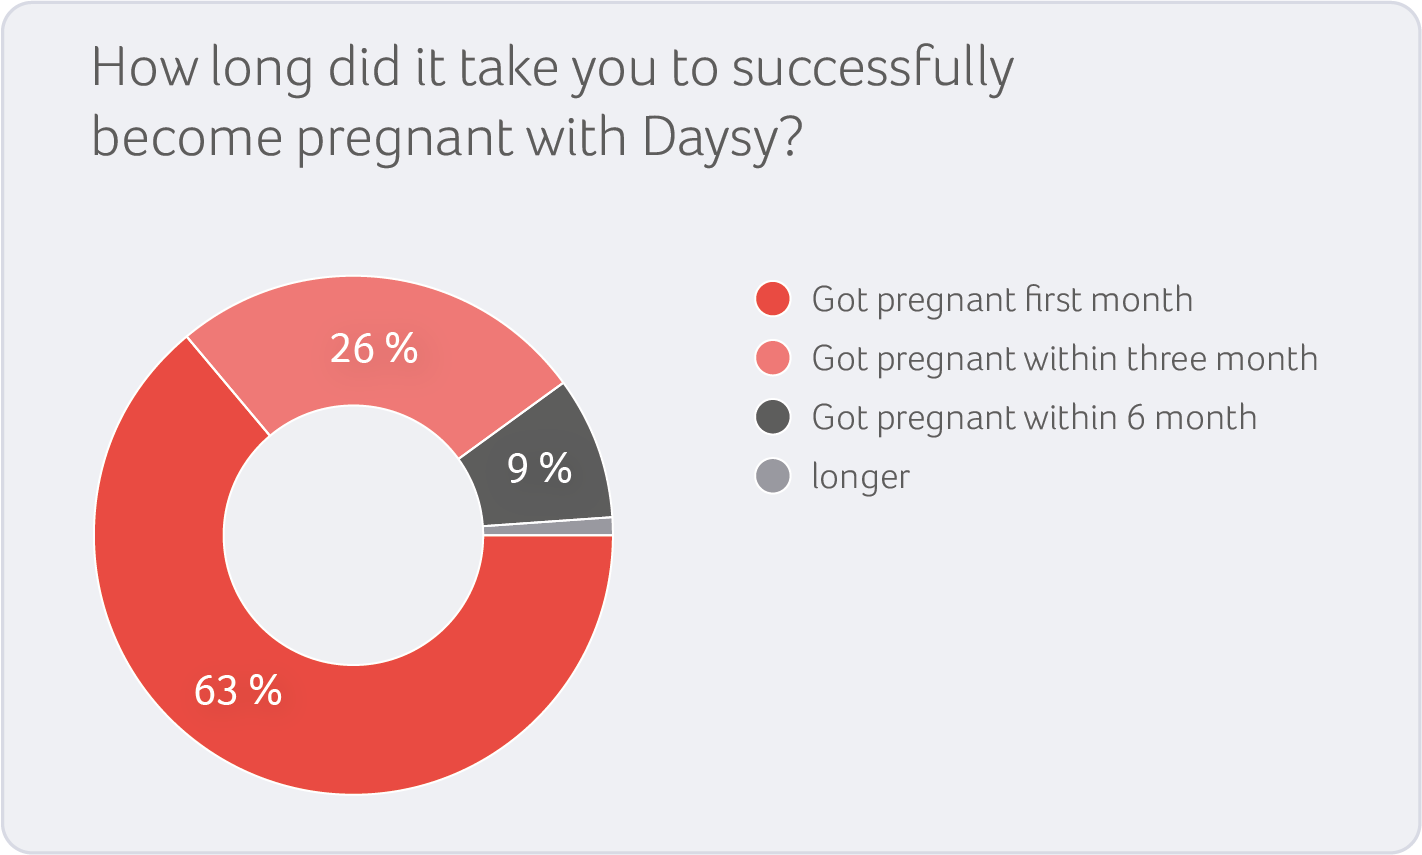 successfully_pregnant_pie_chart_grafik_v2_webcolors.png